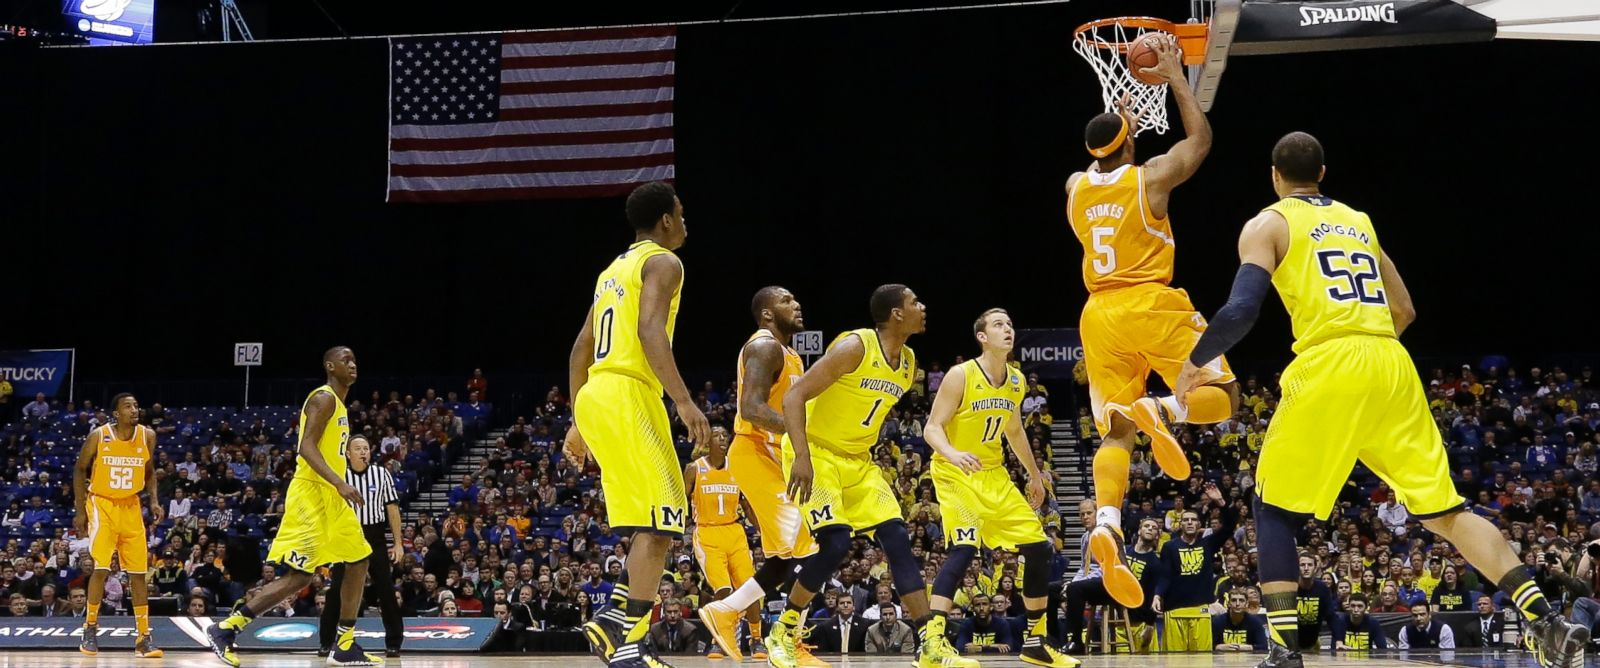 PHOTO: Tennessees Jarnell Stokes shoots during the first half of an NCAA Midwest Regional semifinal college basketball tournament game against Michigan, March 28, 2014, in Indianapolis.